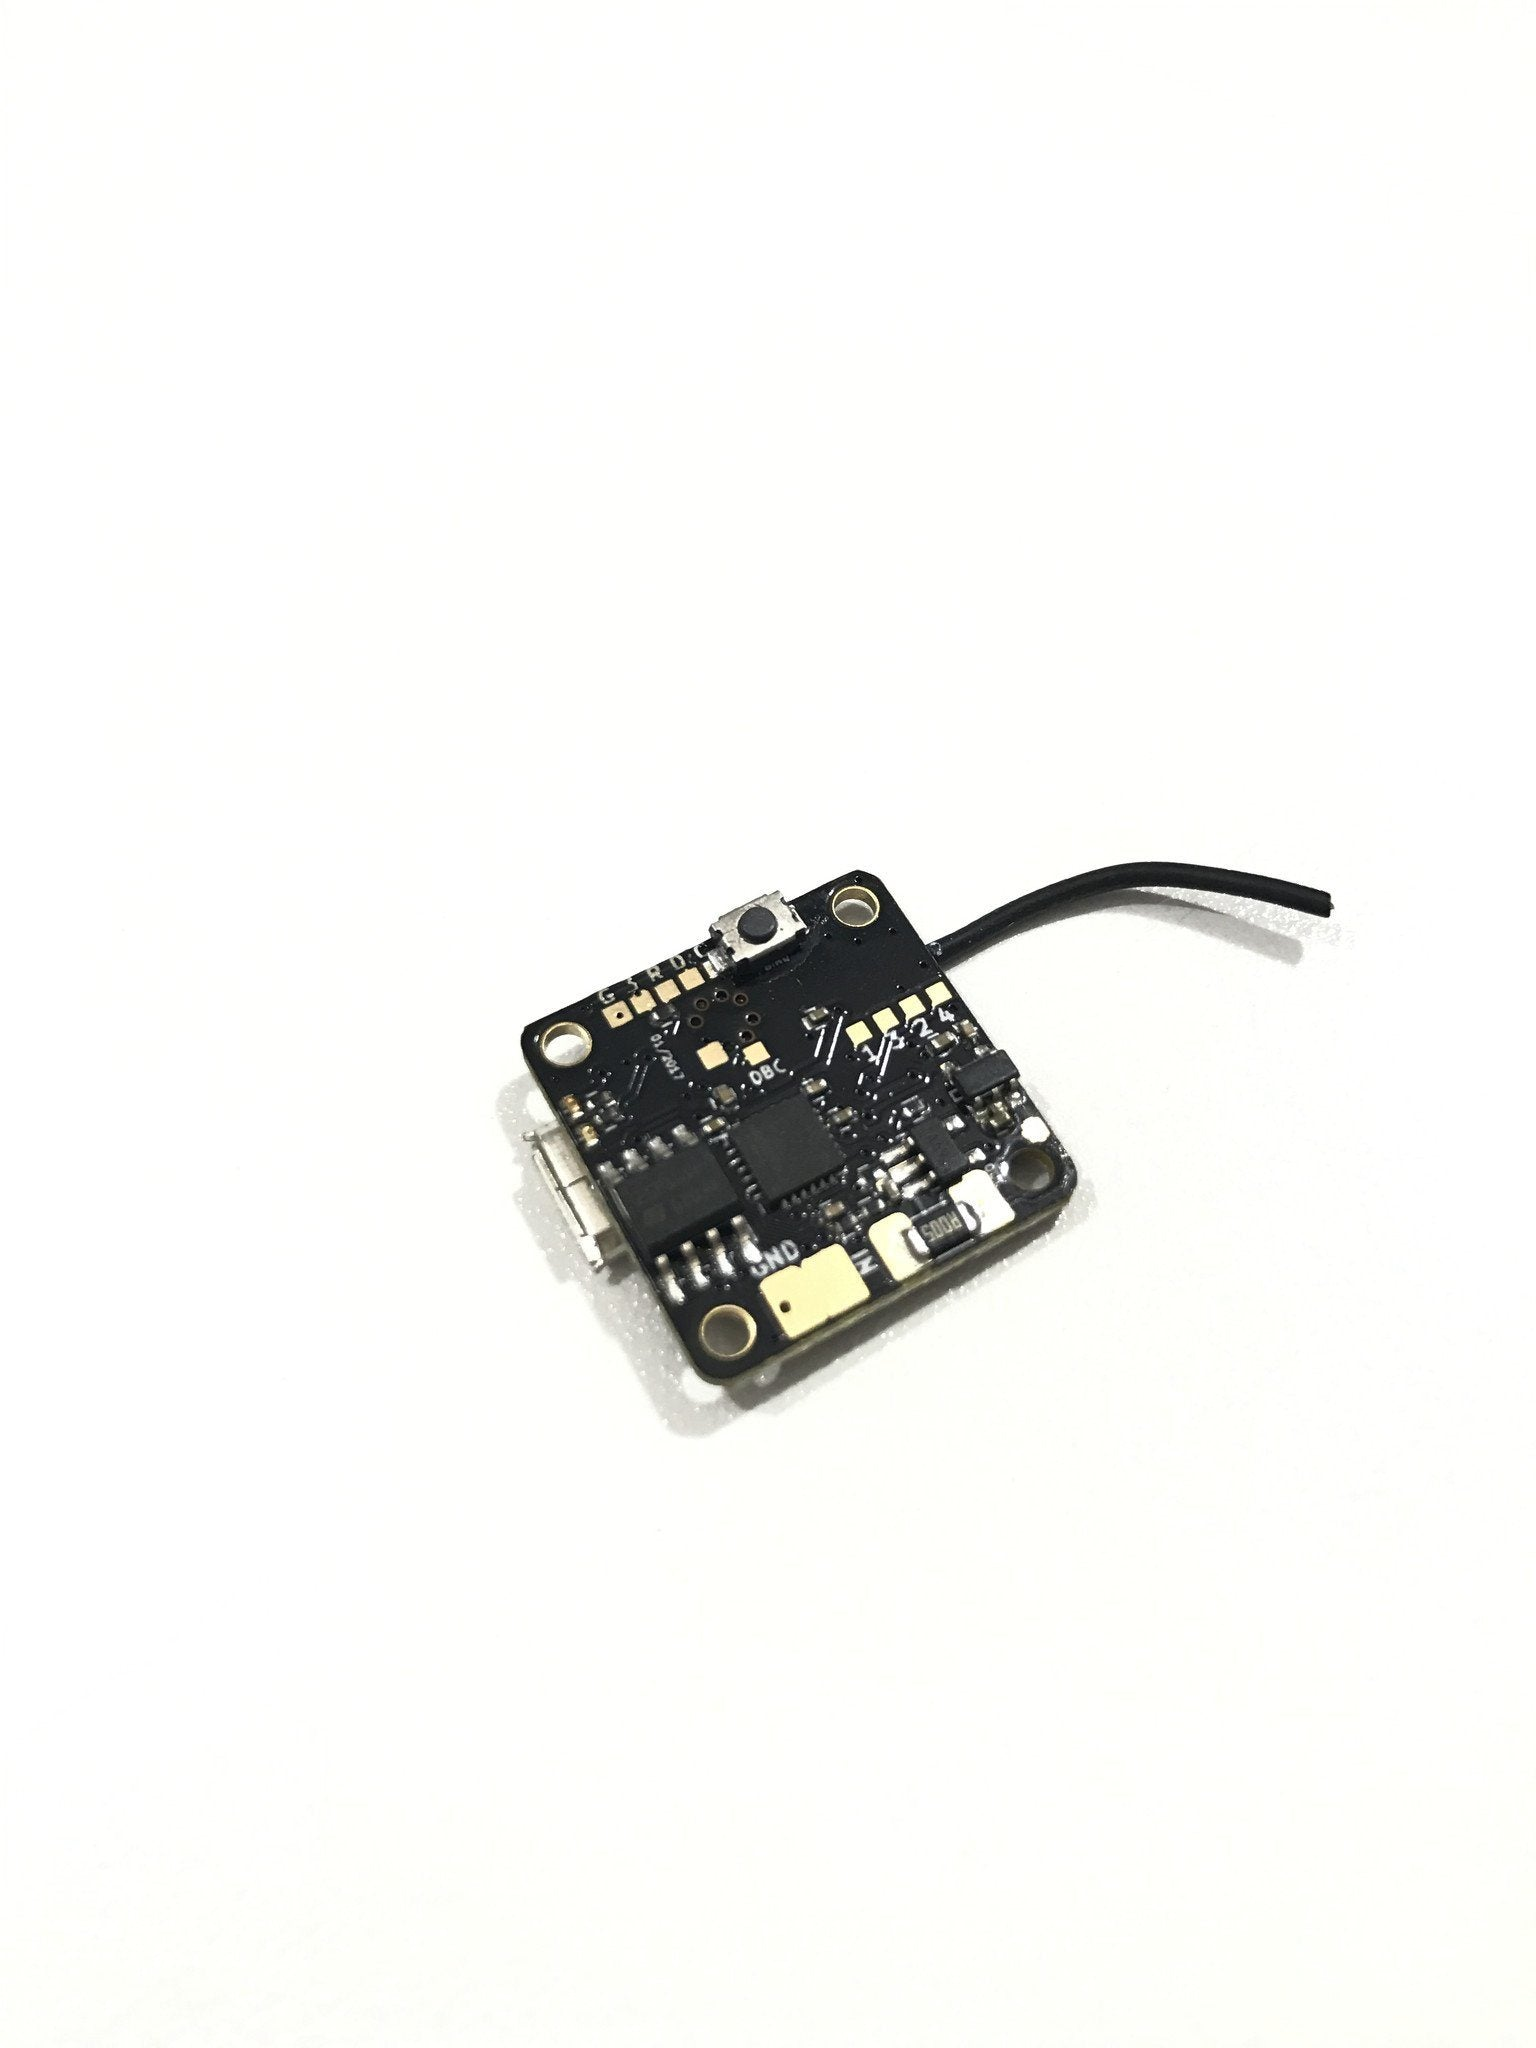 tinyFISH F3 16x16 Flight Controller 1S-2S with Built-in FrSky Receiver (1.7g!) Sunrise